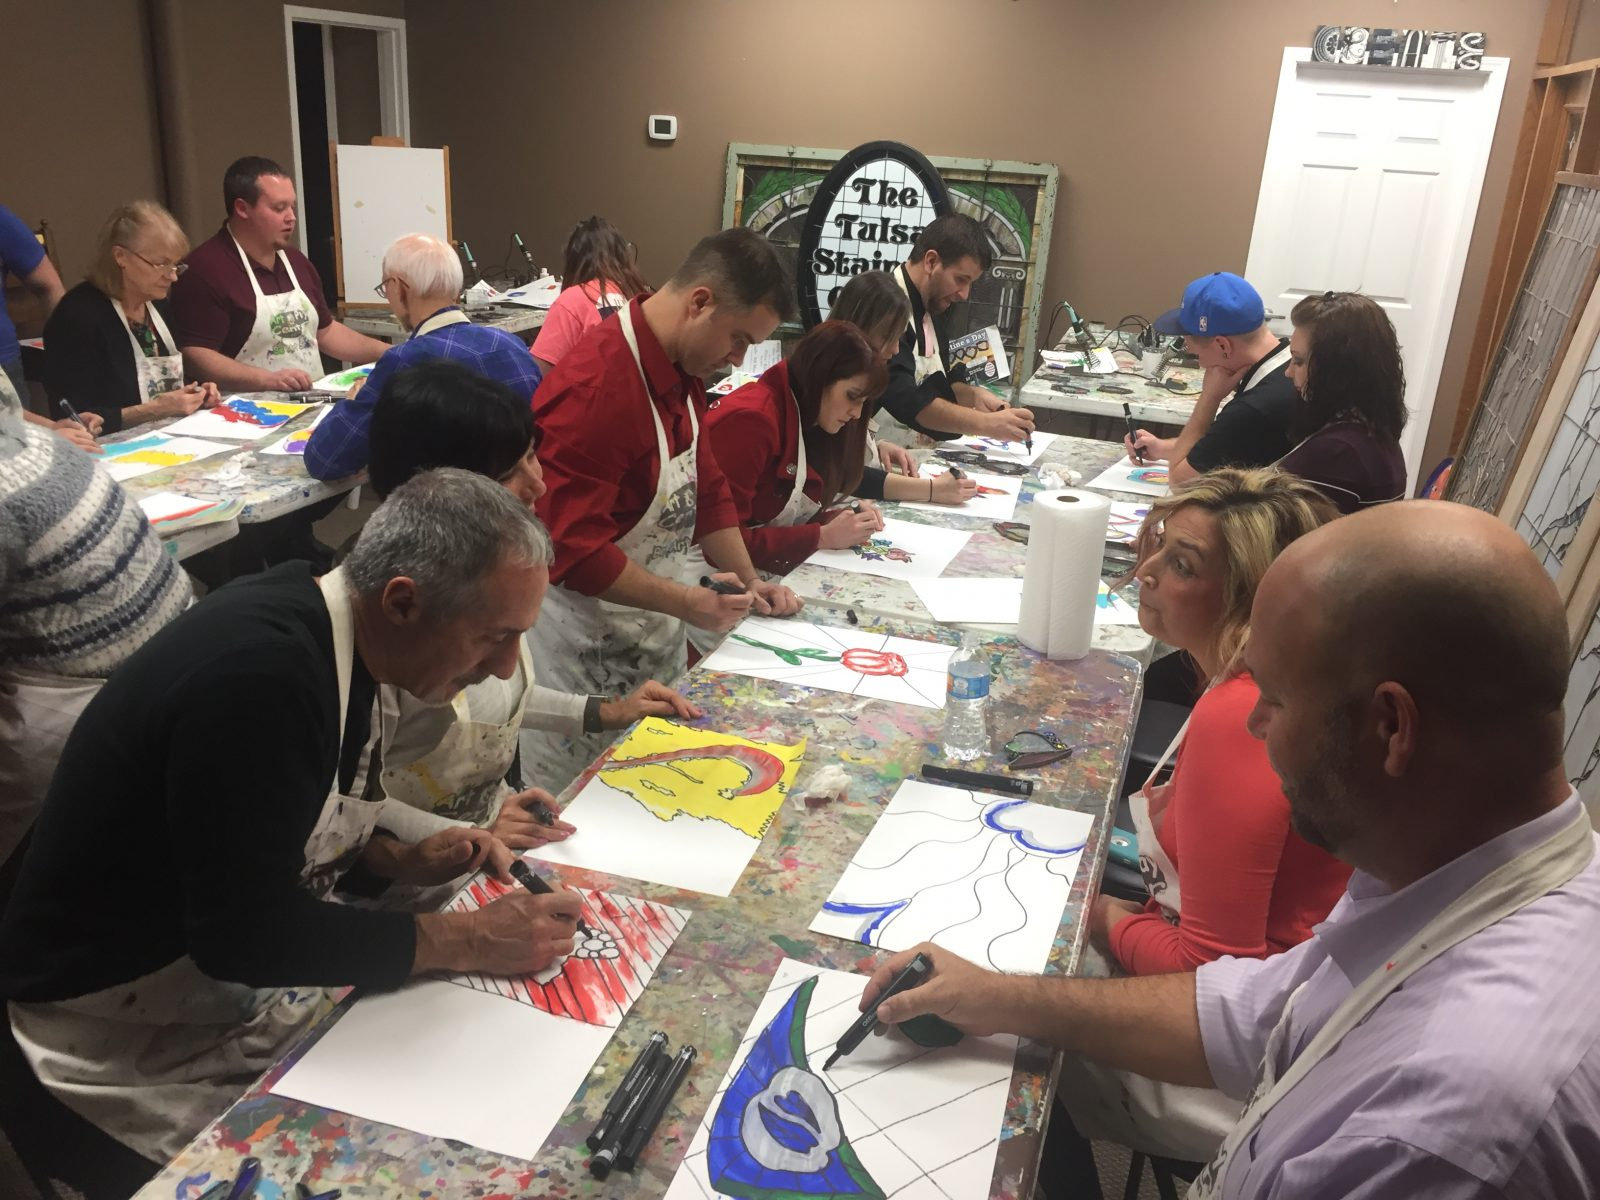 Team Outing Art Glass Experience spontaneous painting